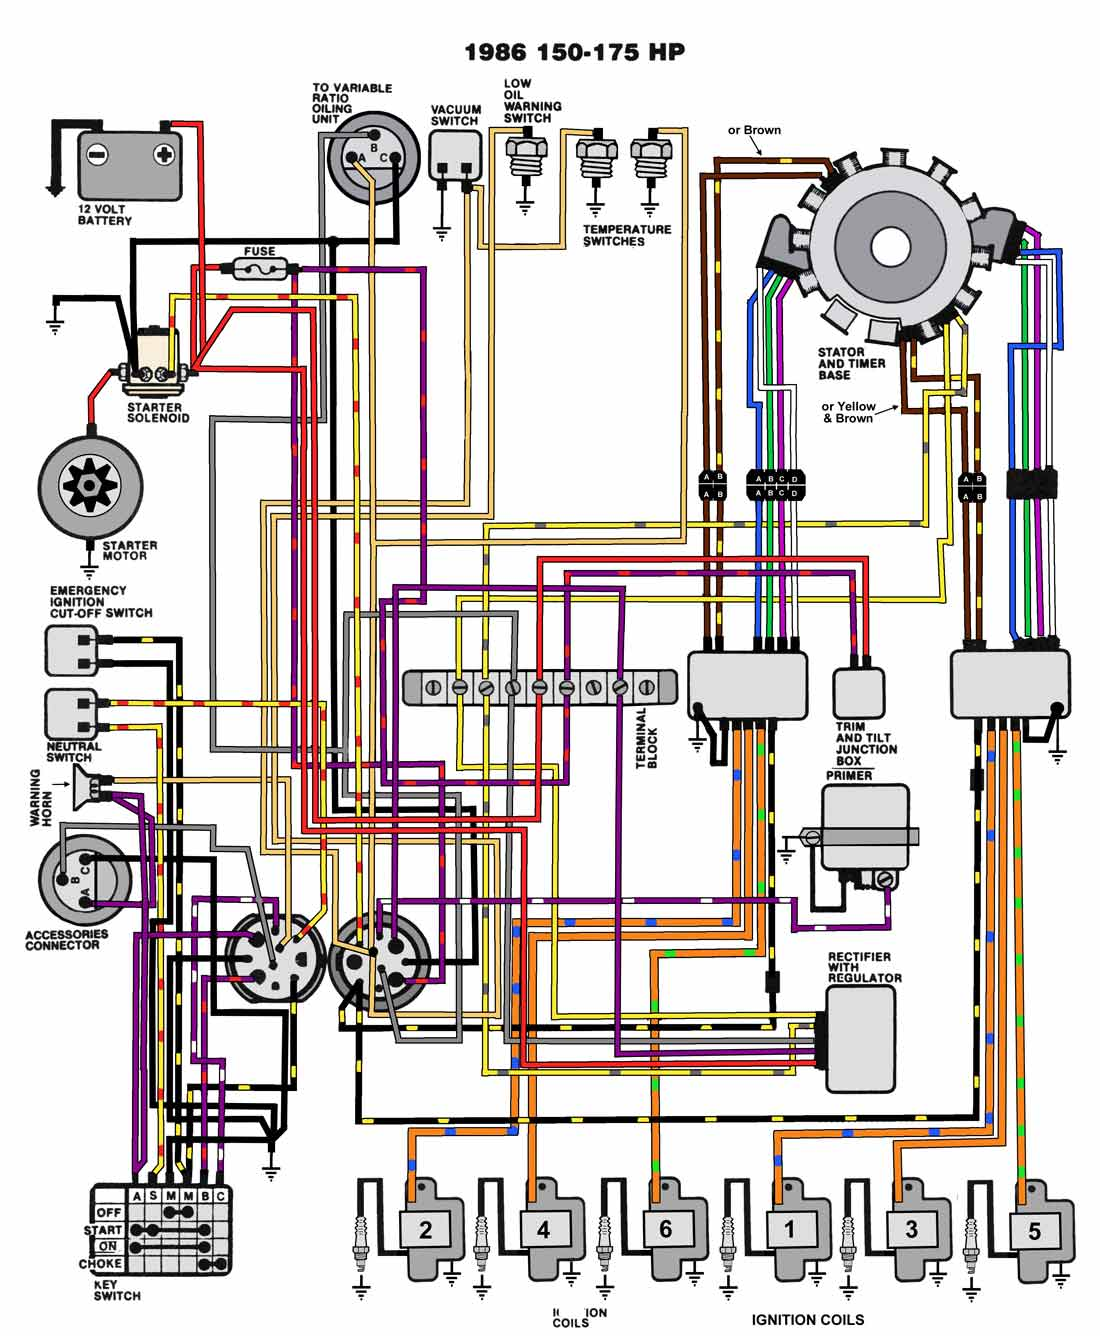 hight resolution of johnson boat wiring diagram wiring diagram technic1981 50 hp johnson outboard wiring diagram 19